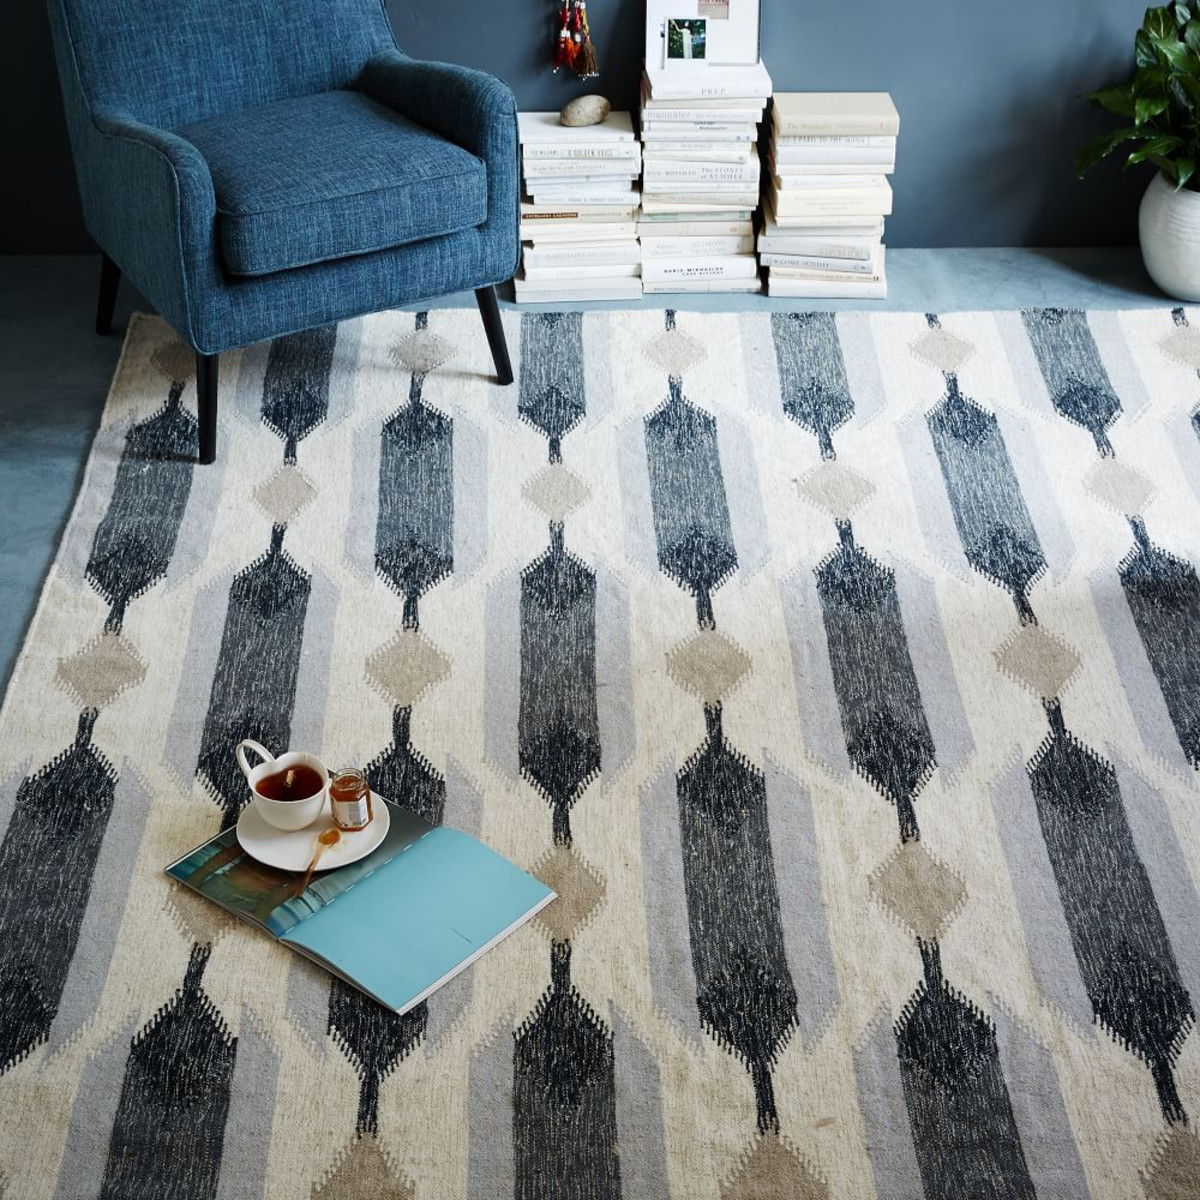 Spring 2016 Homeware On The High Street • The Beat That My